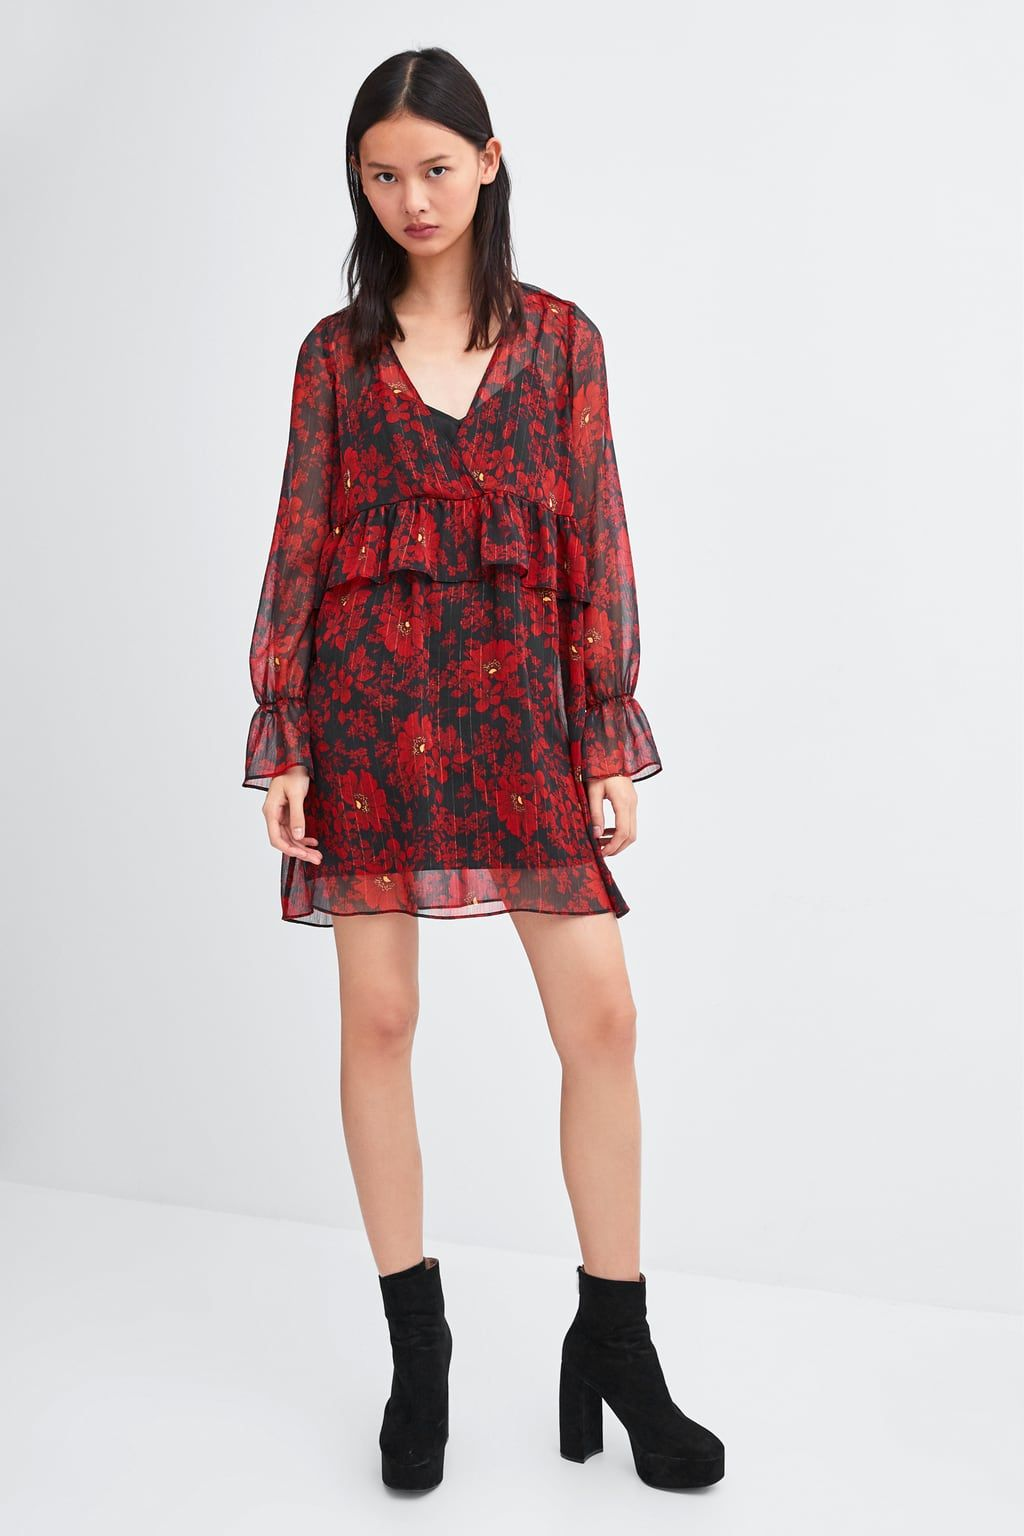 d320c01081262 Image 1 of FLORAL PRINT DRESS from Zara